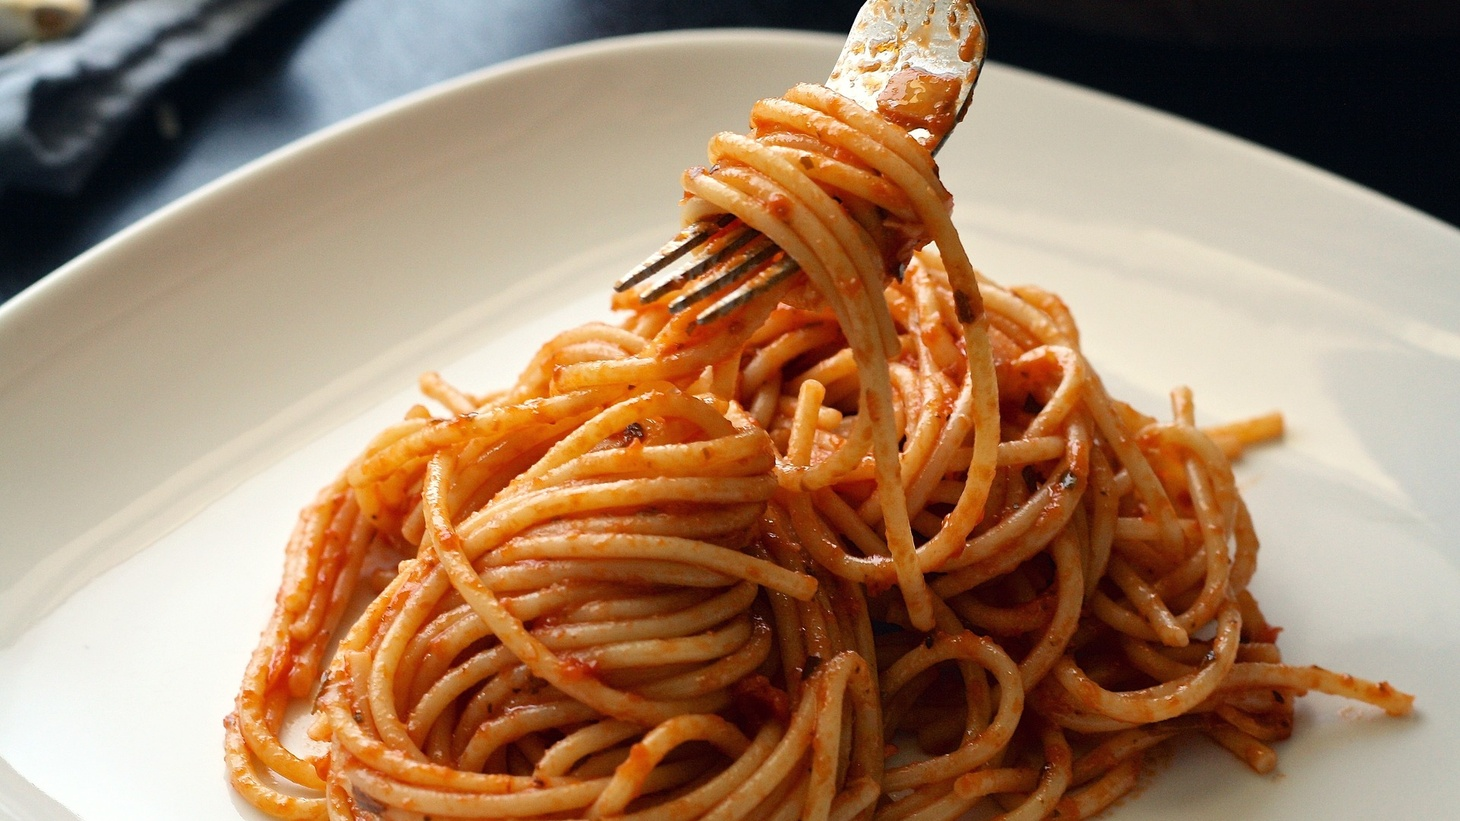 To make tomato sauce, use extra virgin olive oil, fresh tomatoes, garlic and salt. Photo by Pixabay.